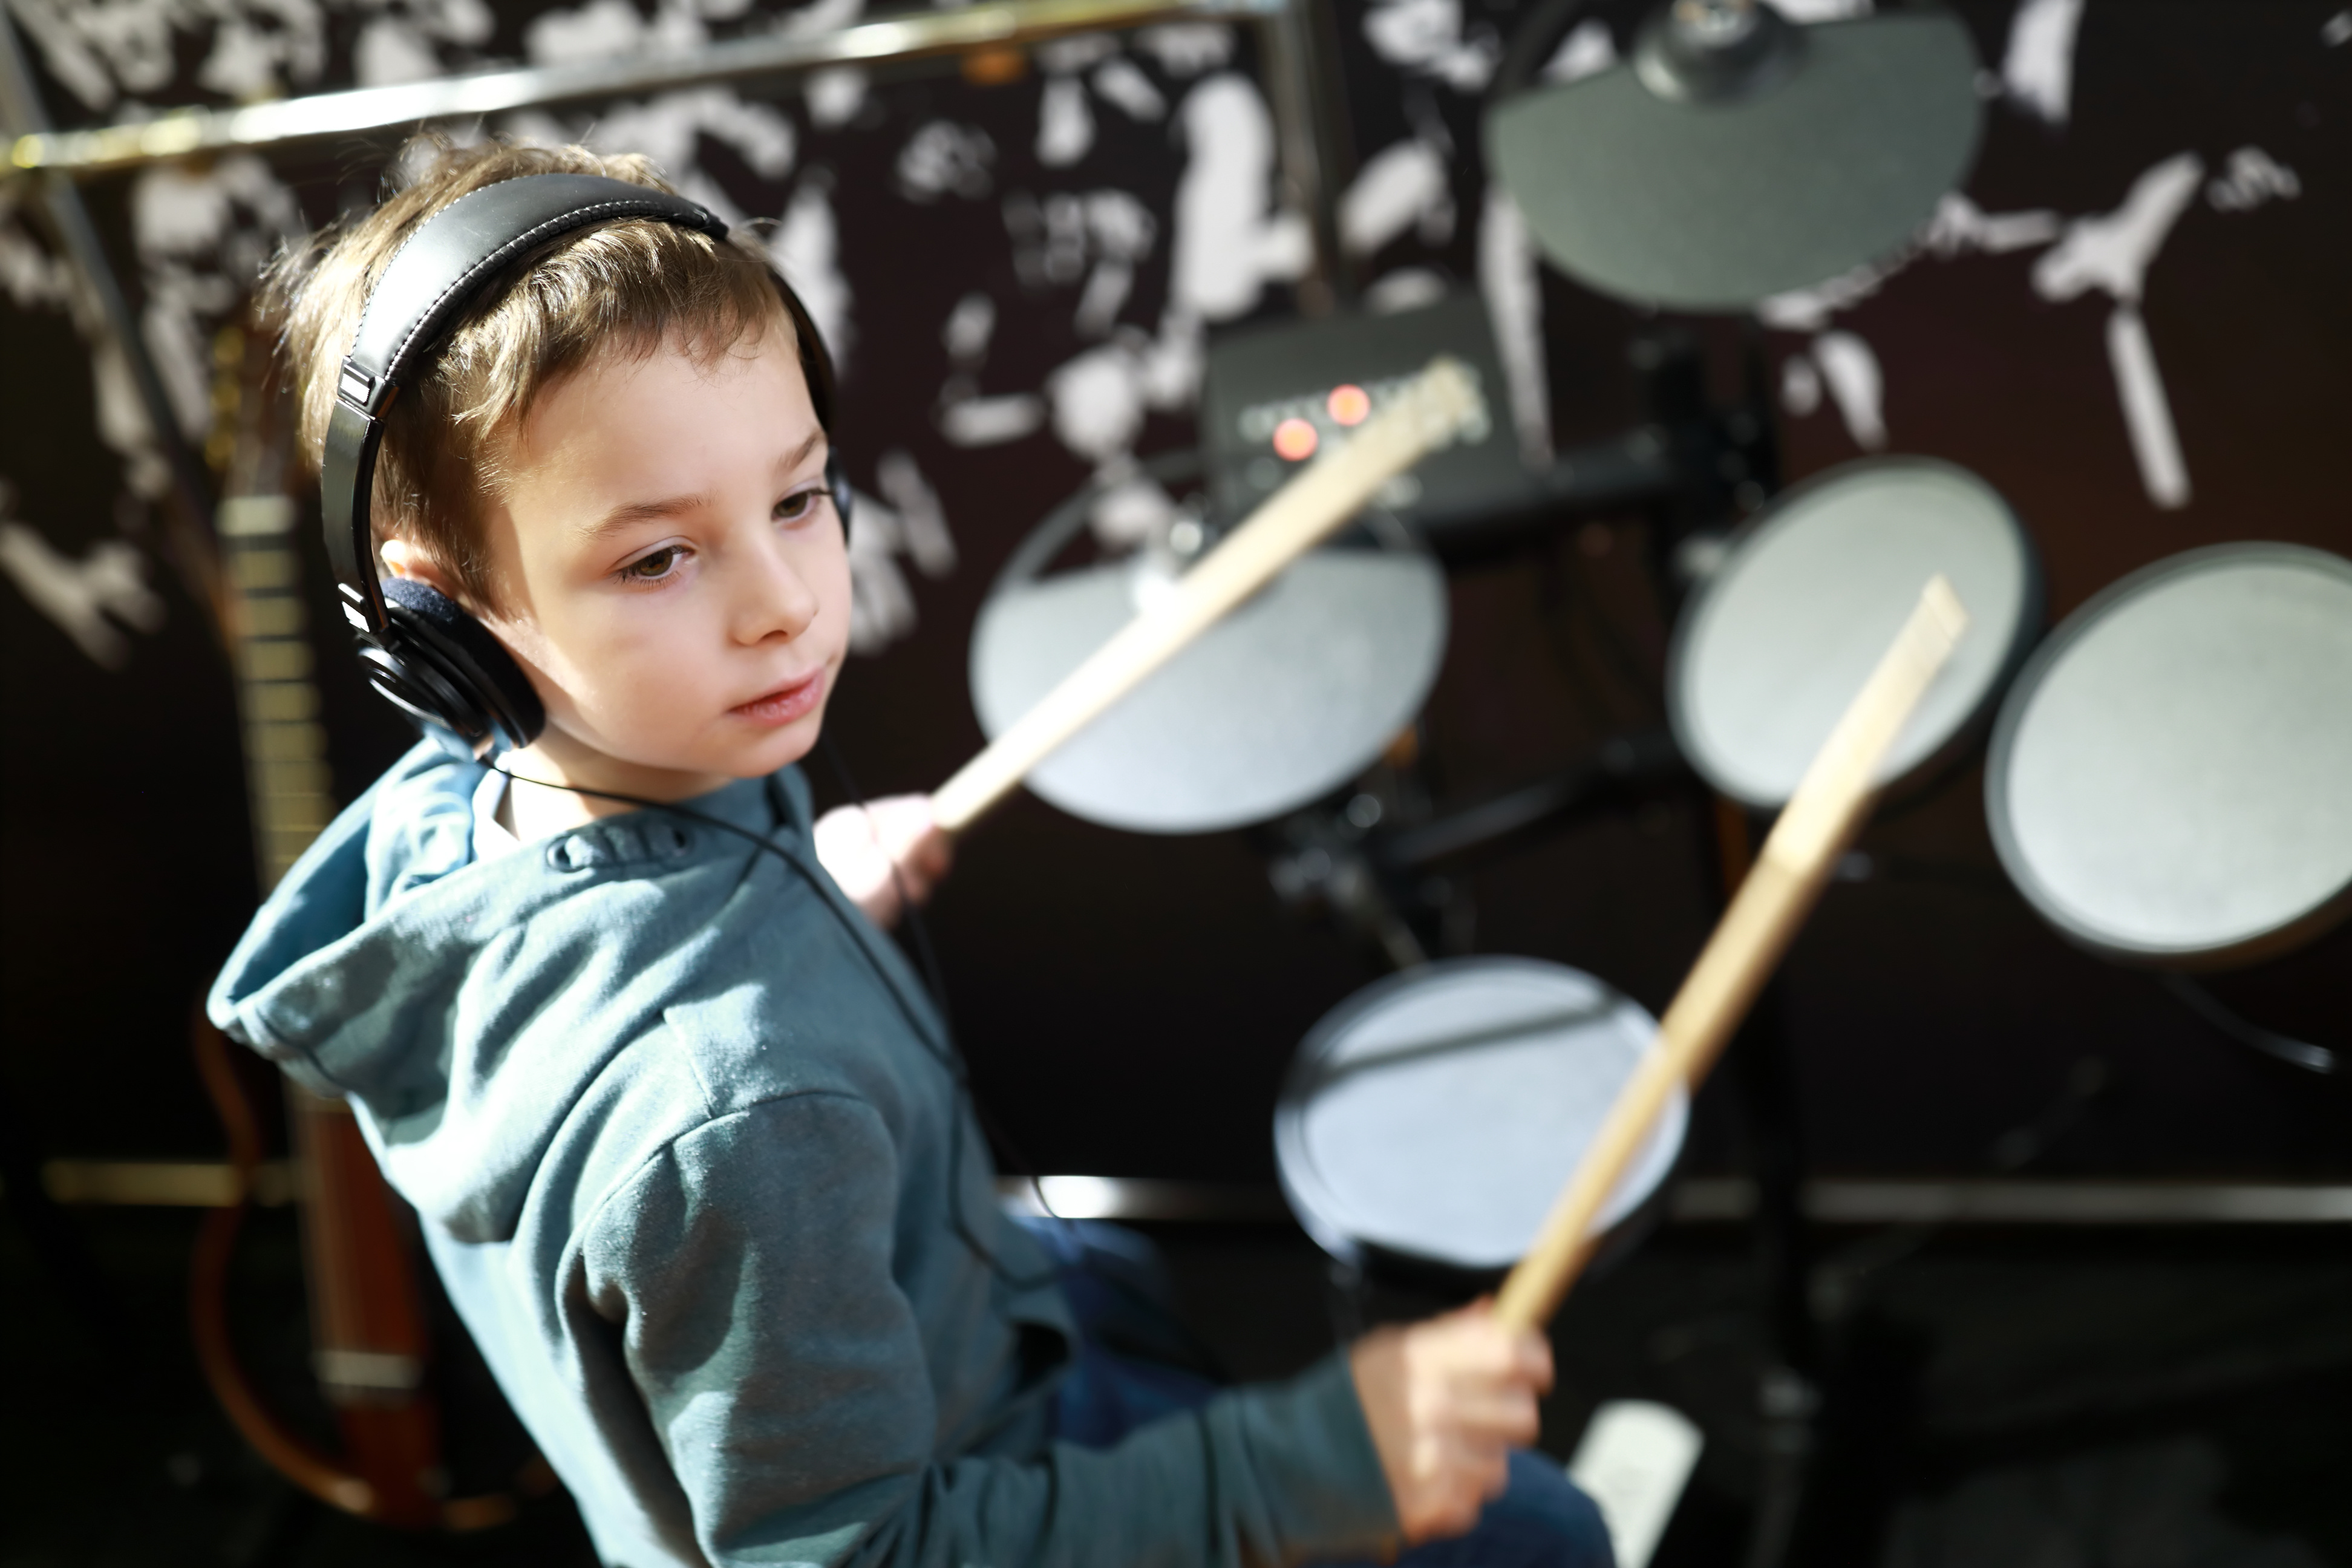 rock bands for kids and adults near me in manmouth county new jersey